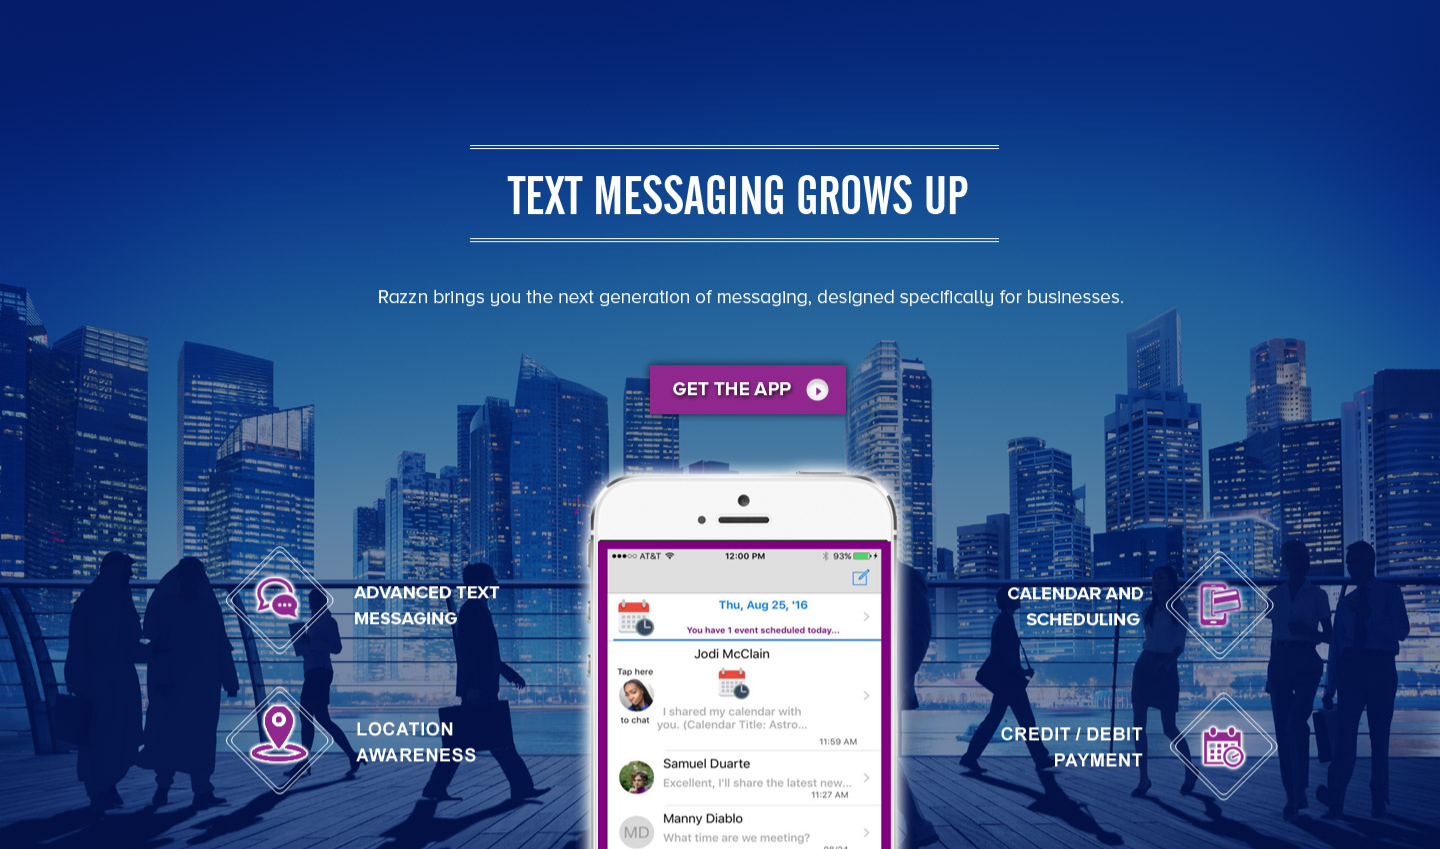 Razzn messaging banner - advanced text messaging, scheduling, and location awareness